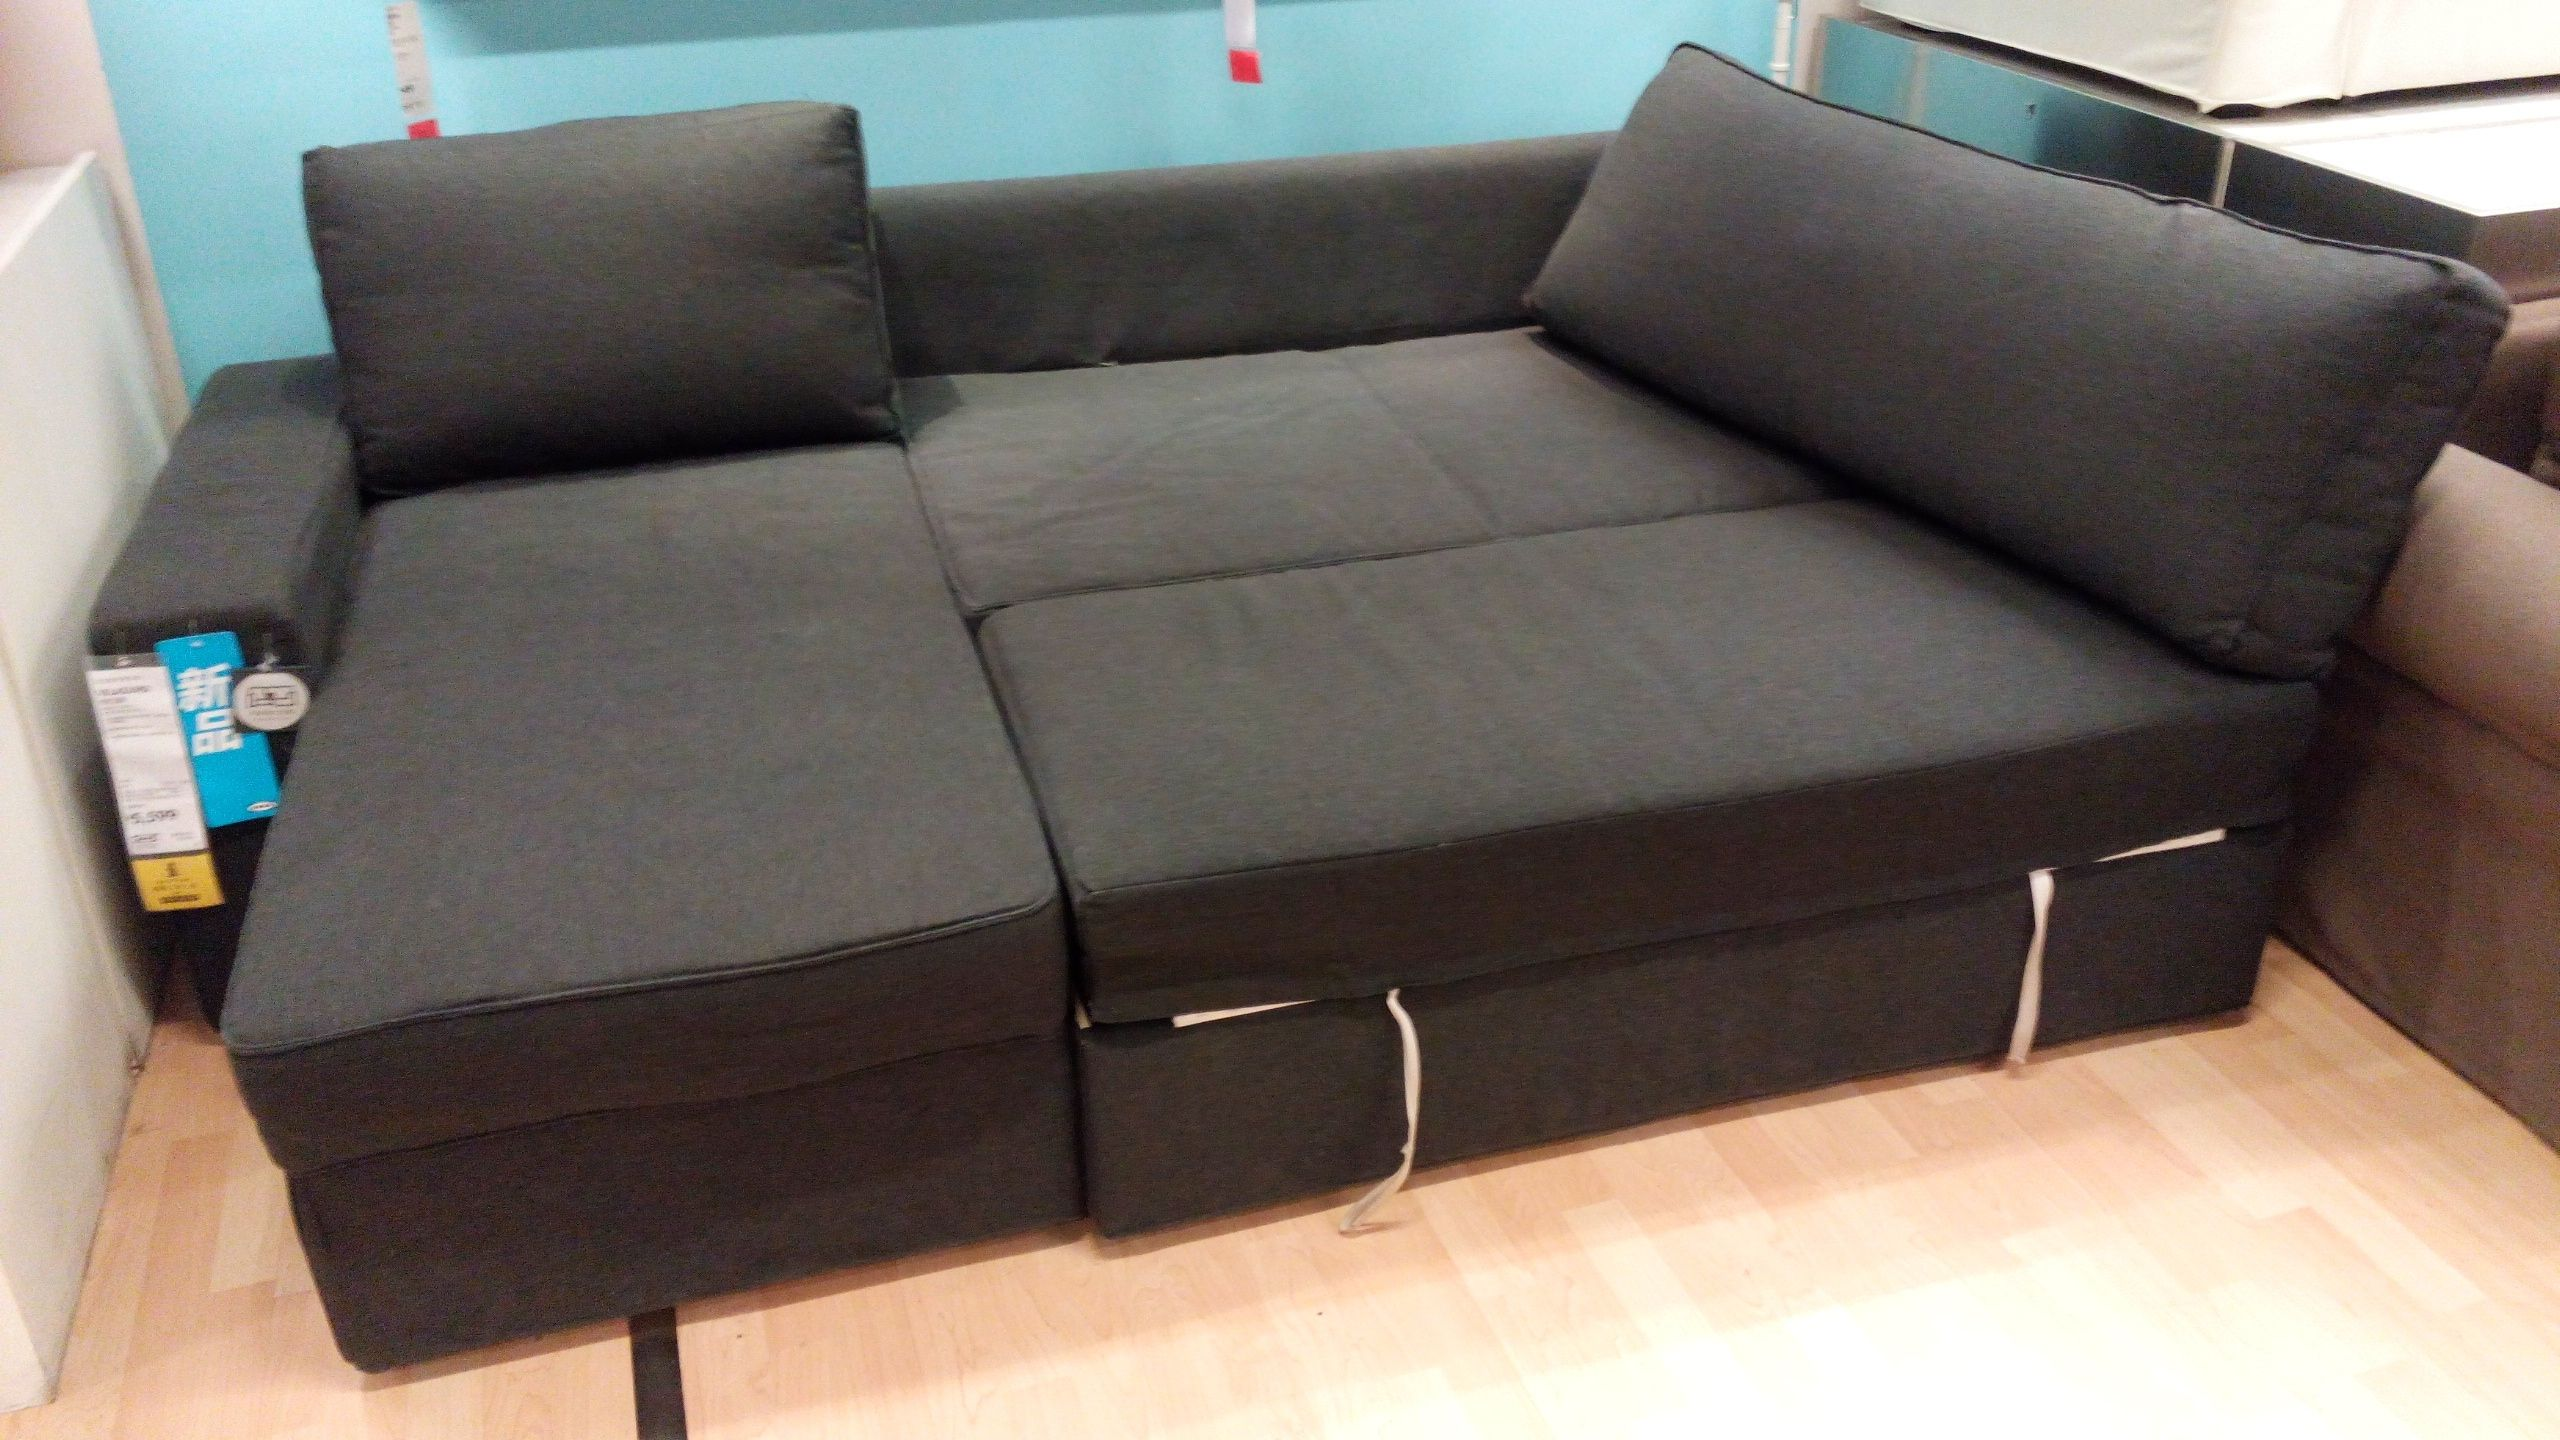 en couch sofa lysed couches bed ikea gb beds armchairs products dark futons sofas with chair grey flottebo